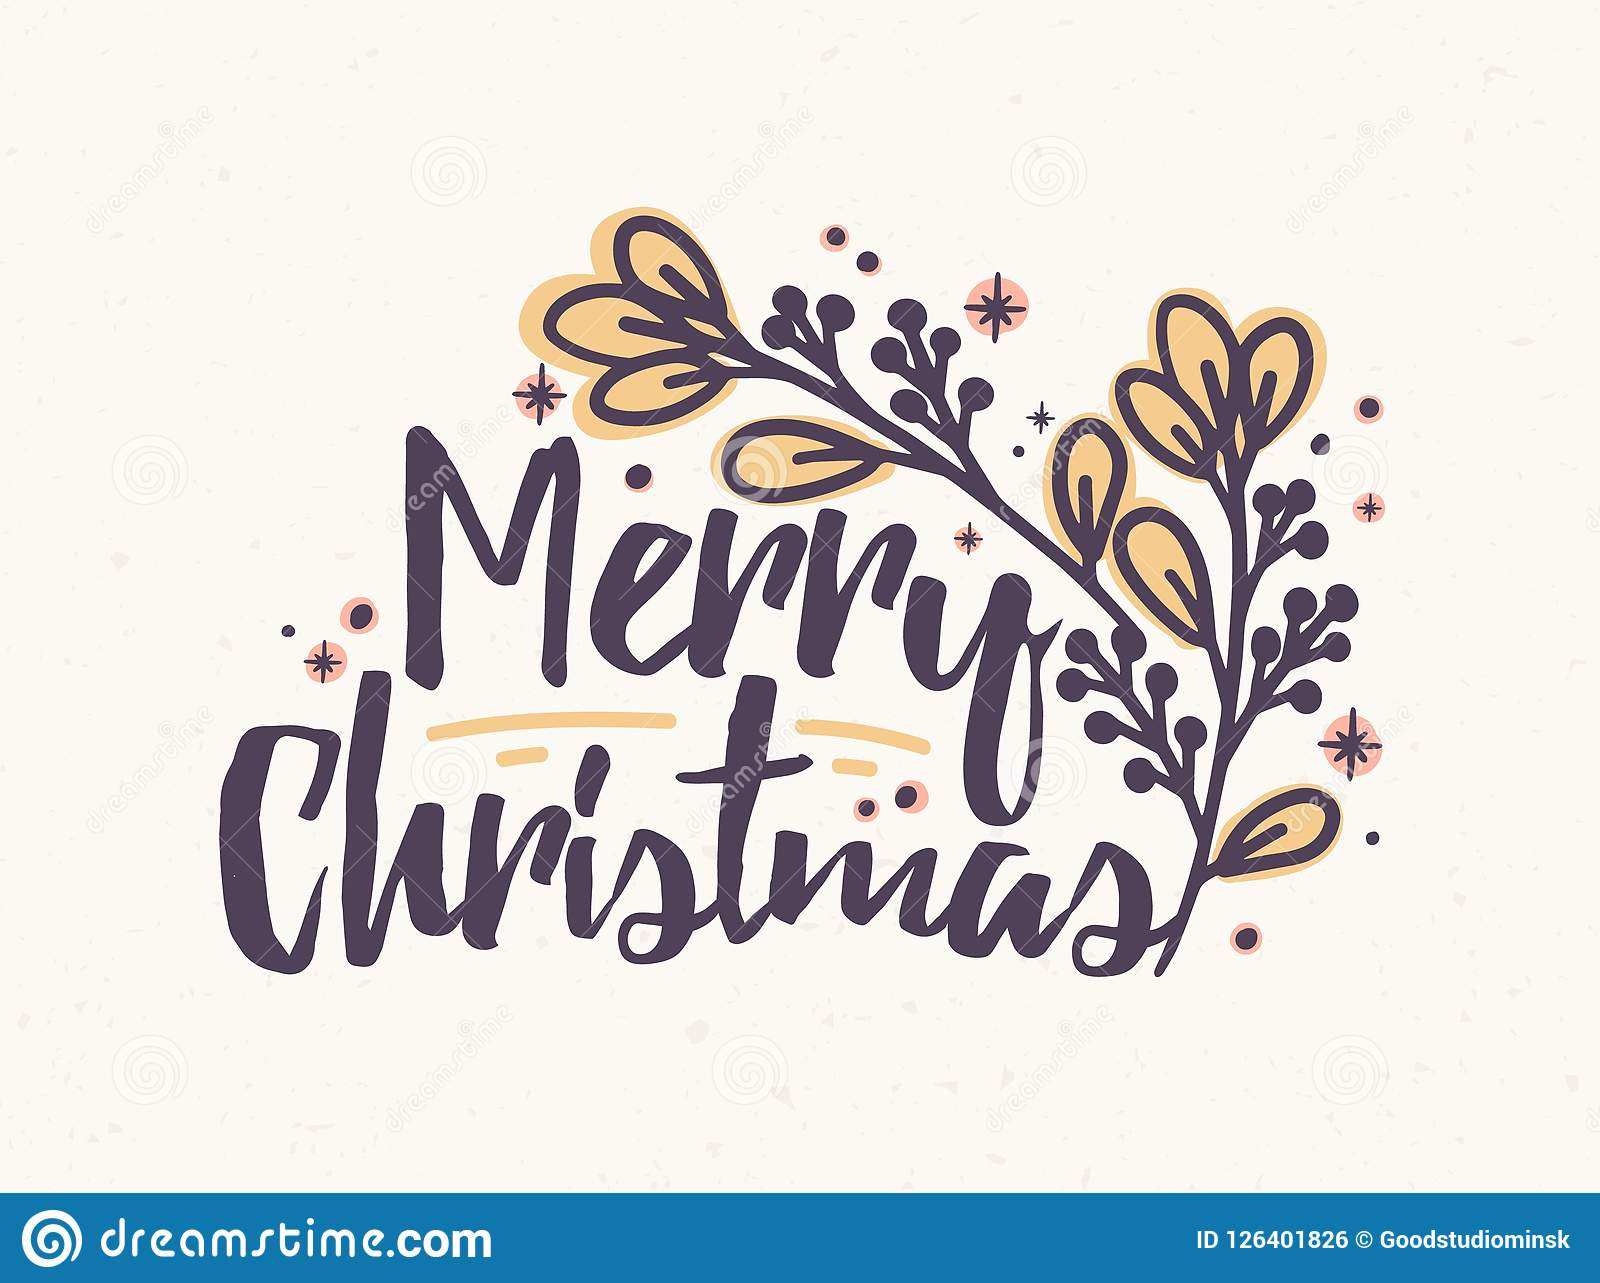 Merry Christmas In Cursive.Merry Christmas Lettering Written With Elegant Cursive